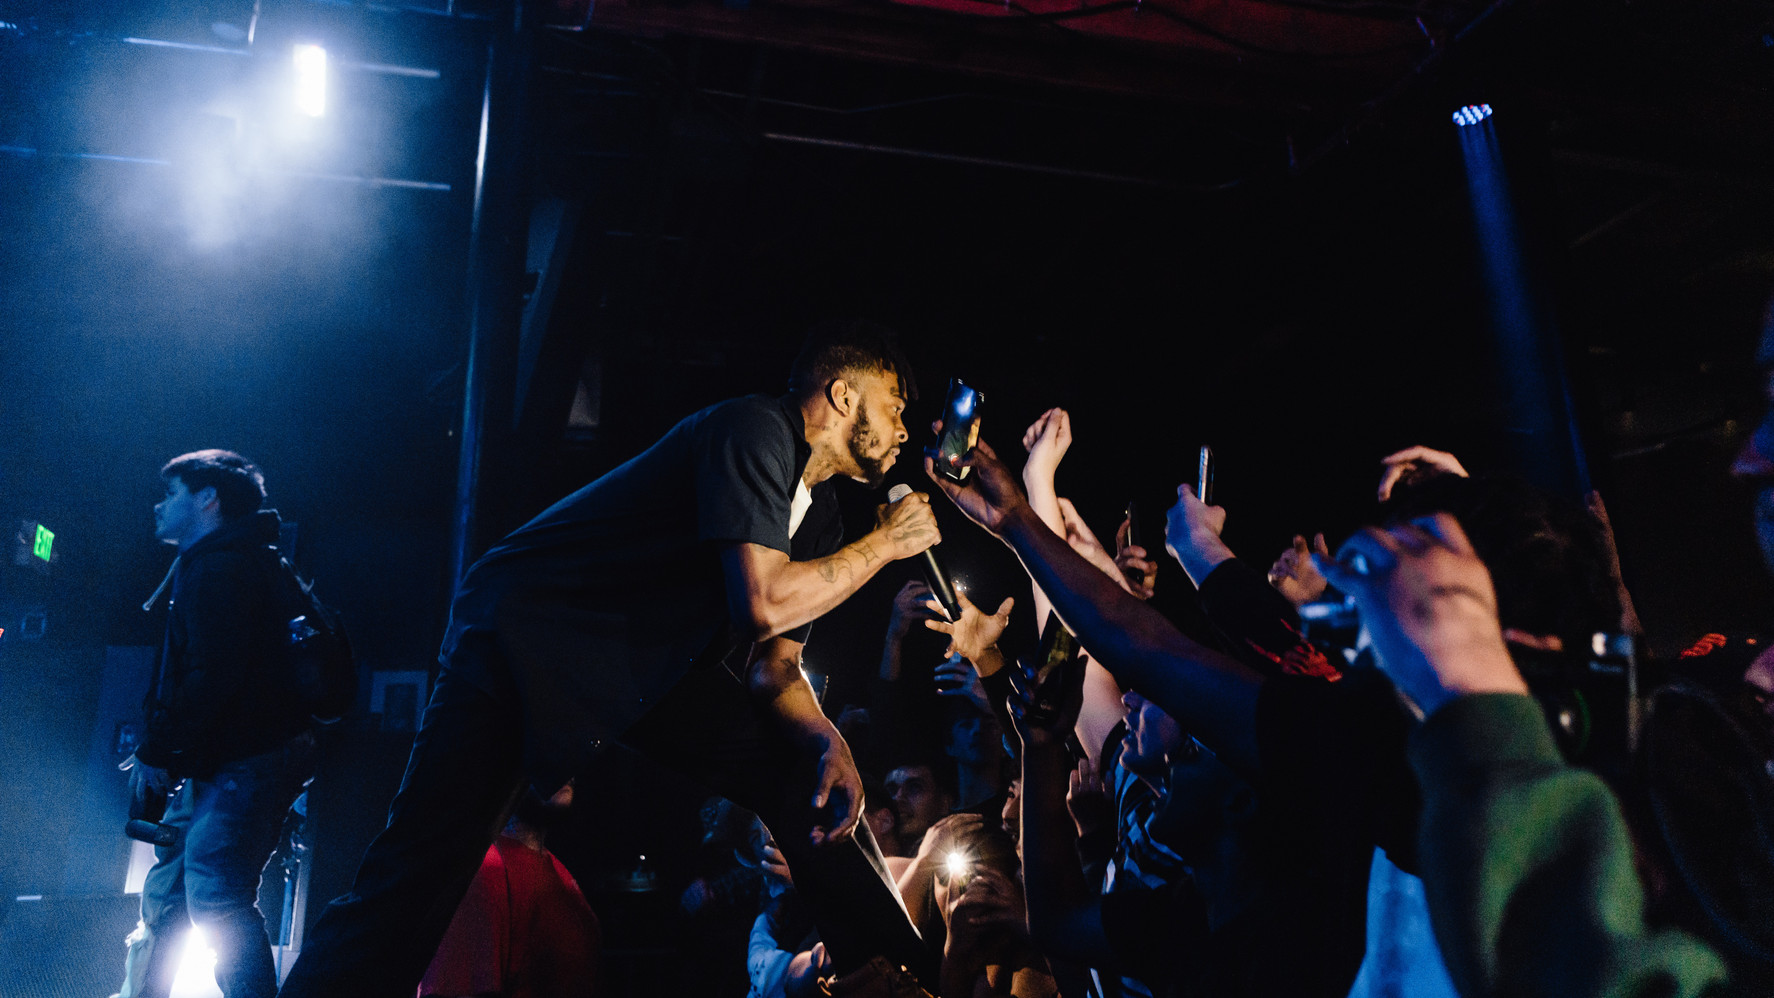 2.18.20 | Thouxanbanfauni & Teejayx6 | Slim's, SF, CA | Photographer: Samuel Altamirano - Goldenvoice